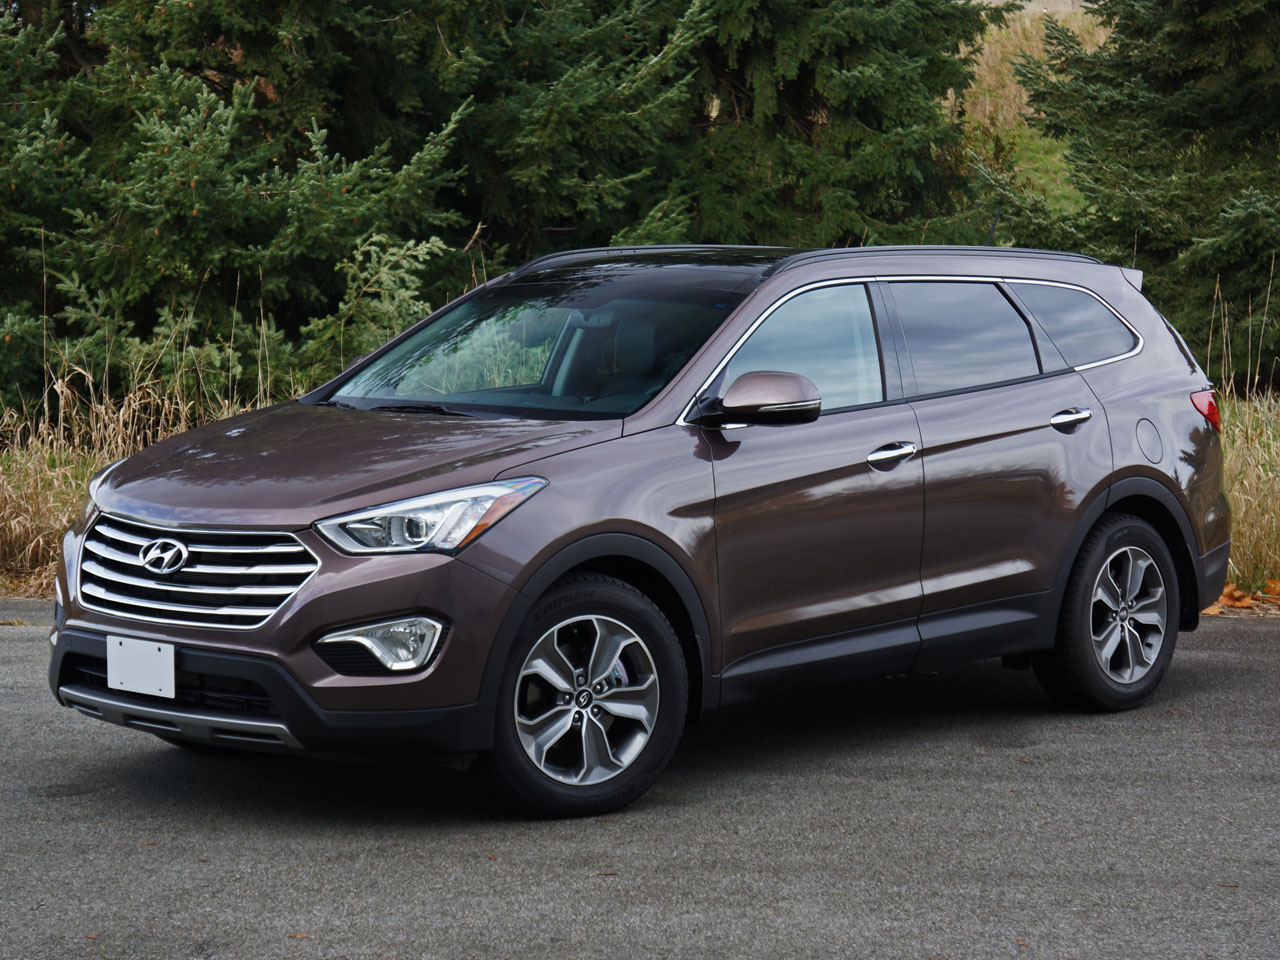 2014 hyundai santa fe xl luxury road test review carcostcanada. Black Bedroom Furniture Sets. Home Design Ideas